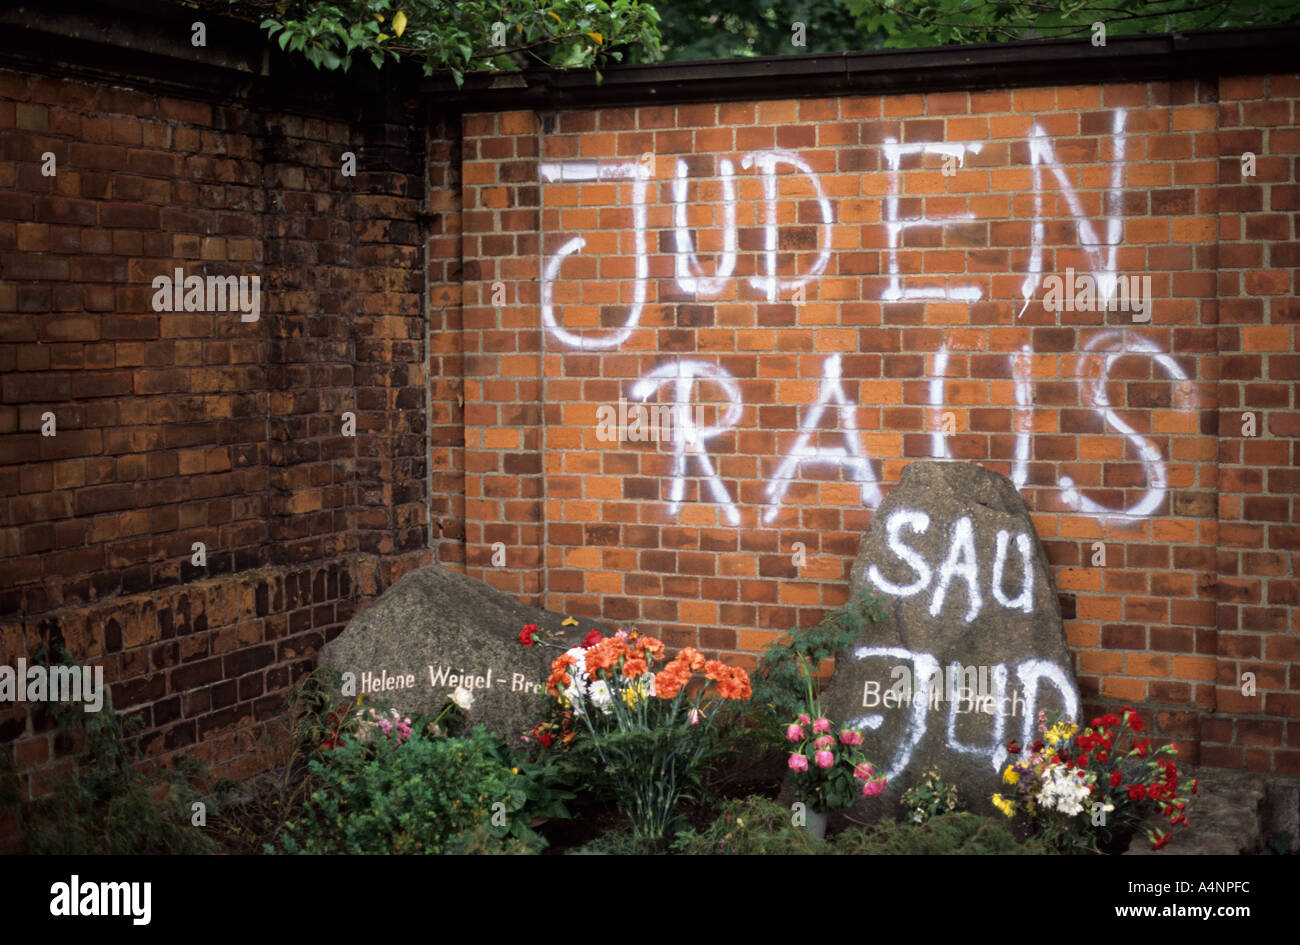 The graves of Bertolt Brecht and his wife Helene Weigel smeared with anti semitic graffiti. Dorotheenstadt cemetery Stock Photo